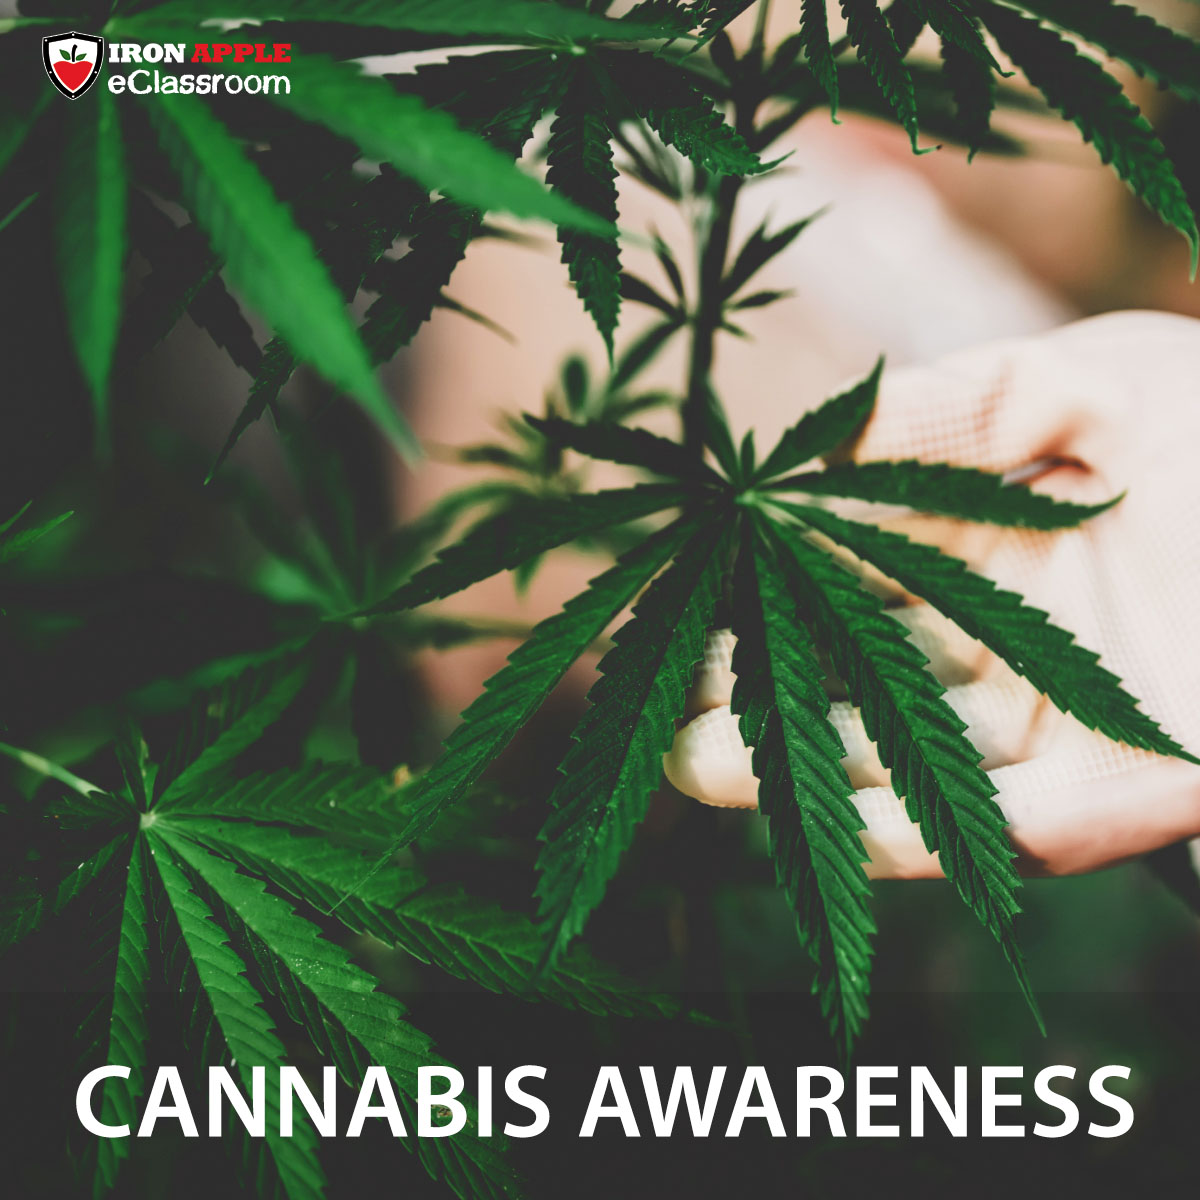 Cannabis Awareness Training by Iron Apple eClassroom